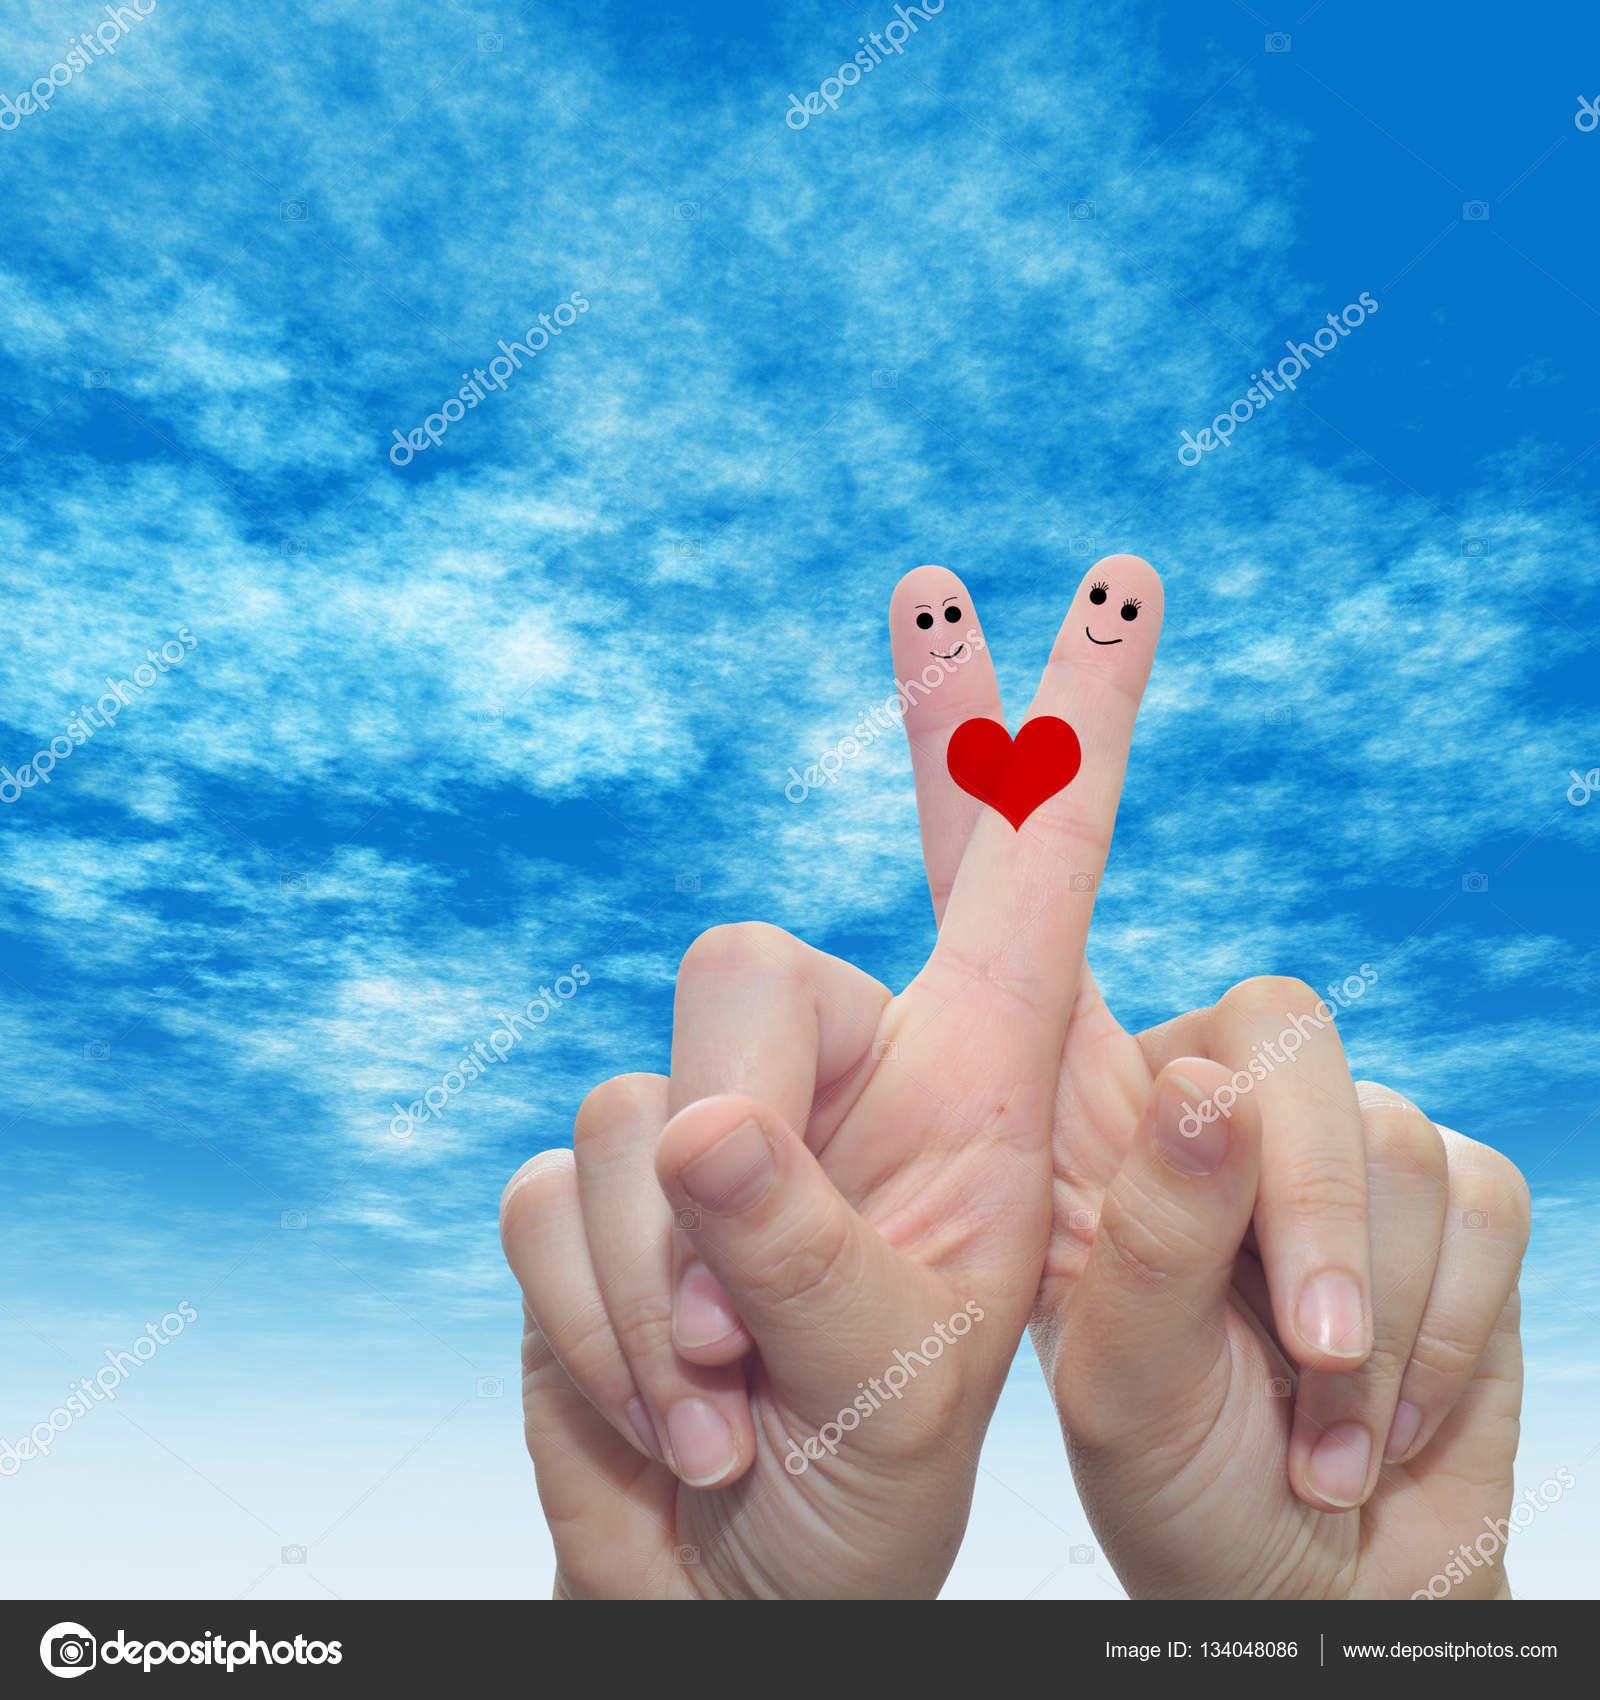 Female Fingers Painted With Heart And Faces Stock Photo Design36